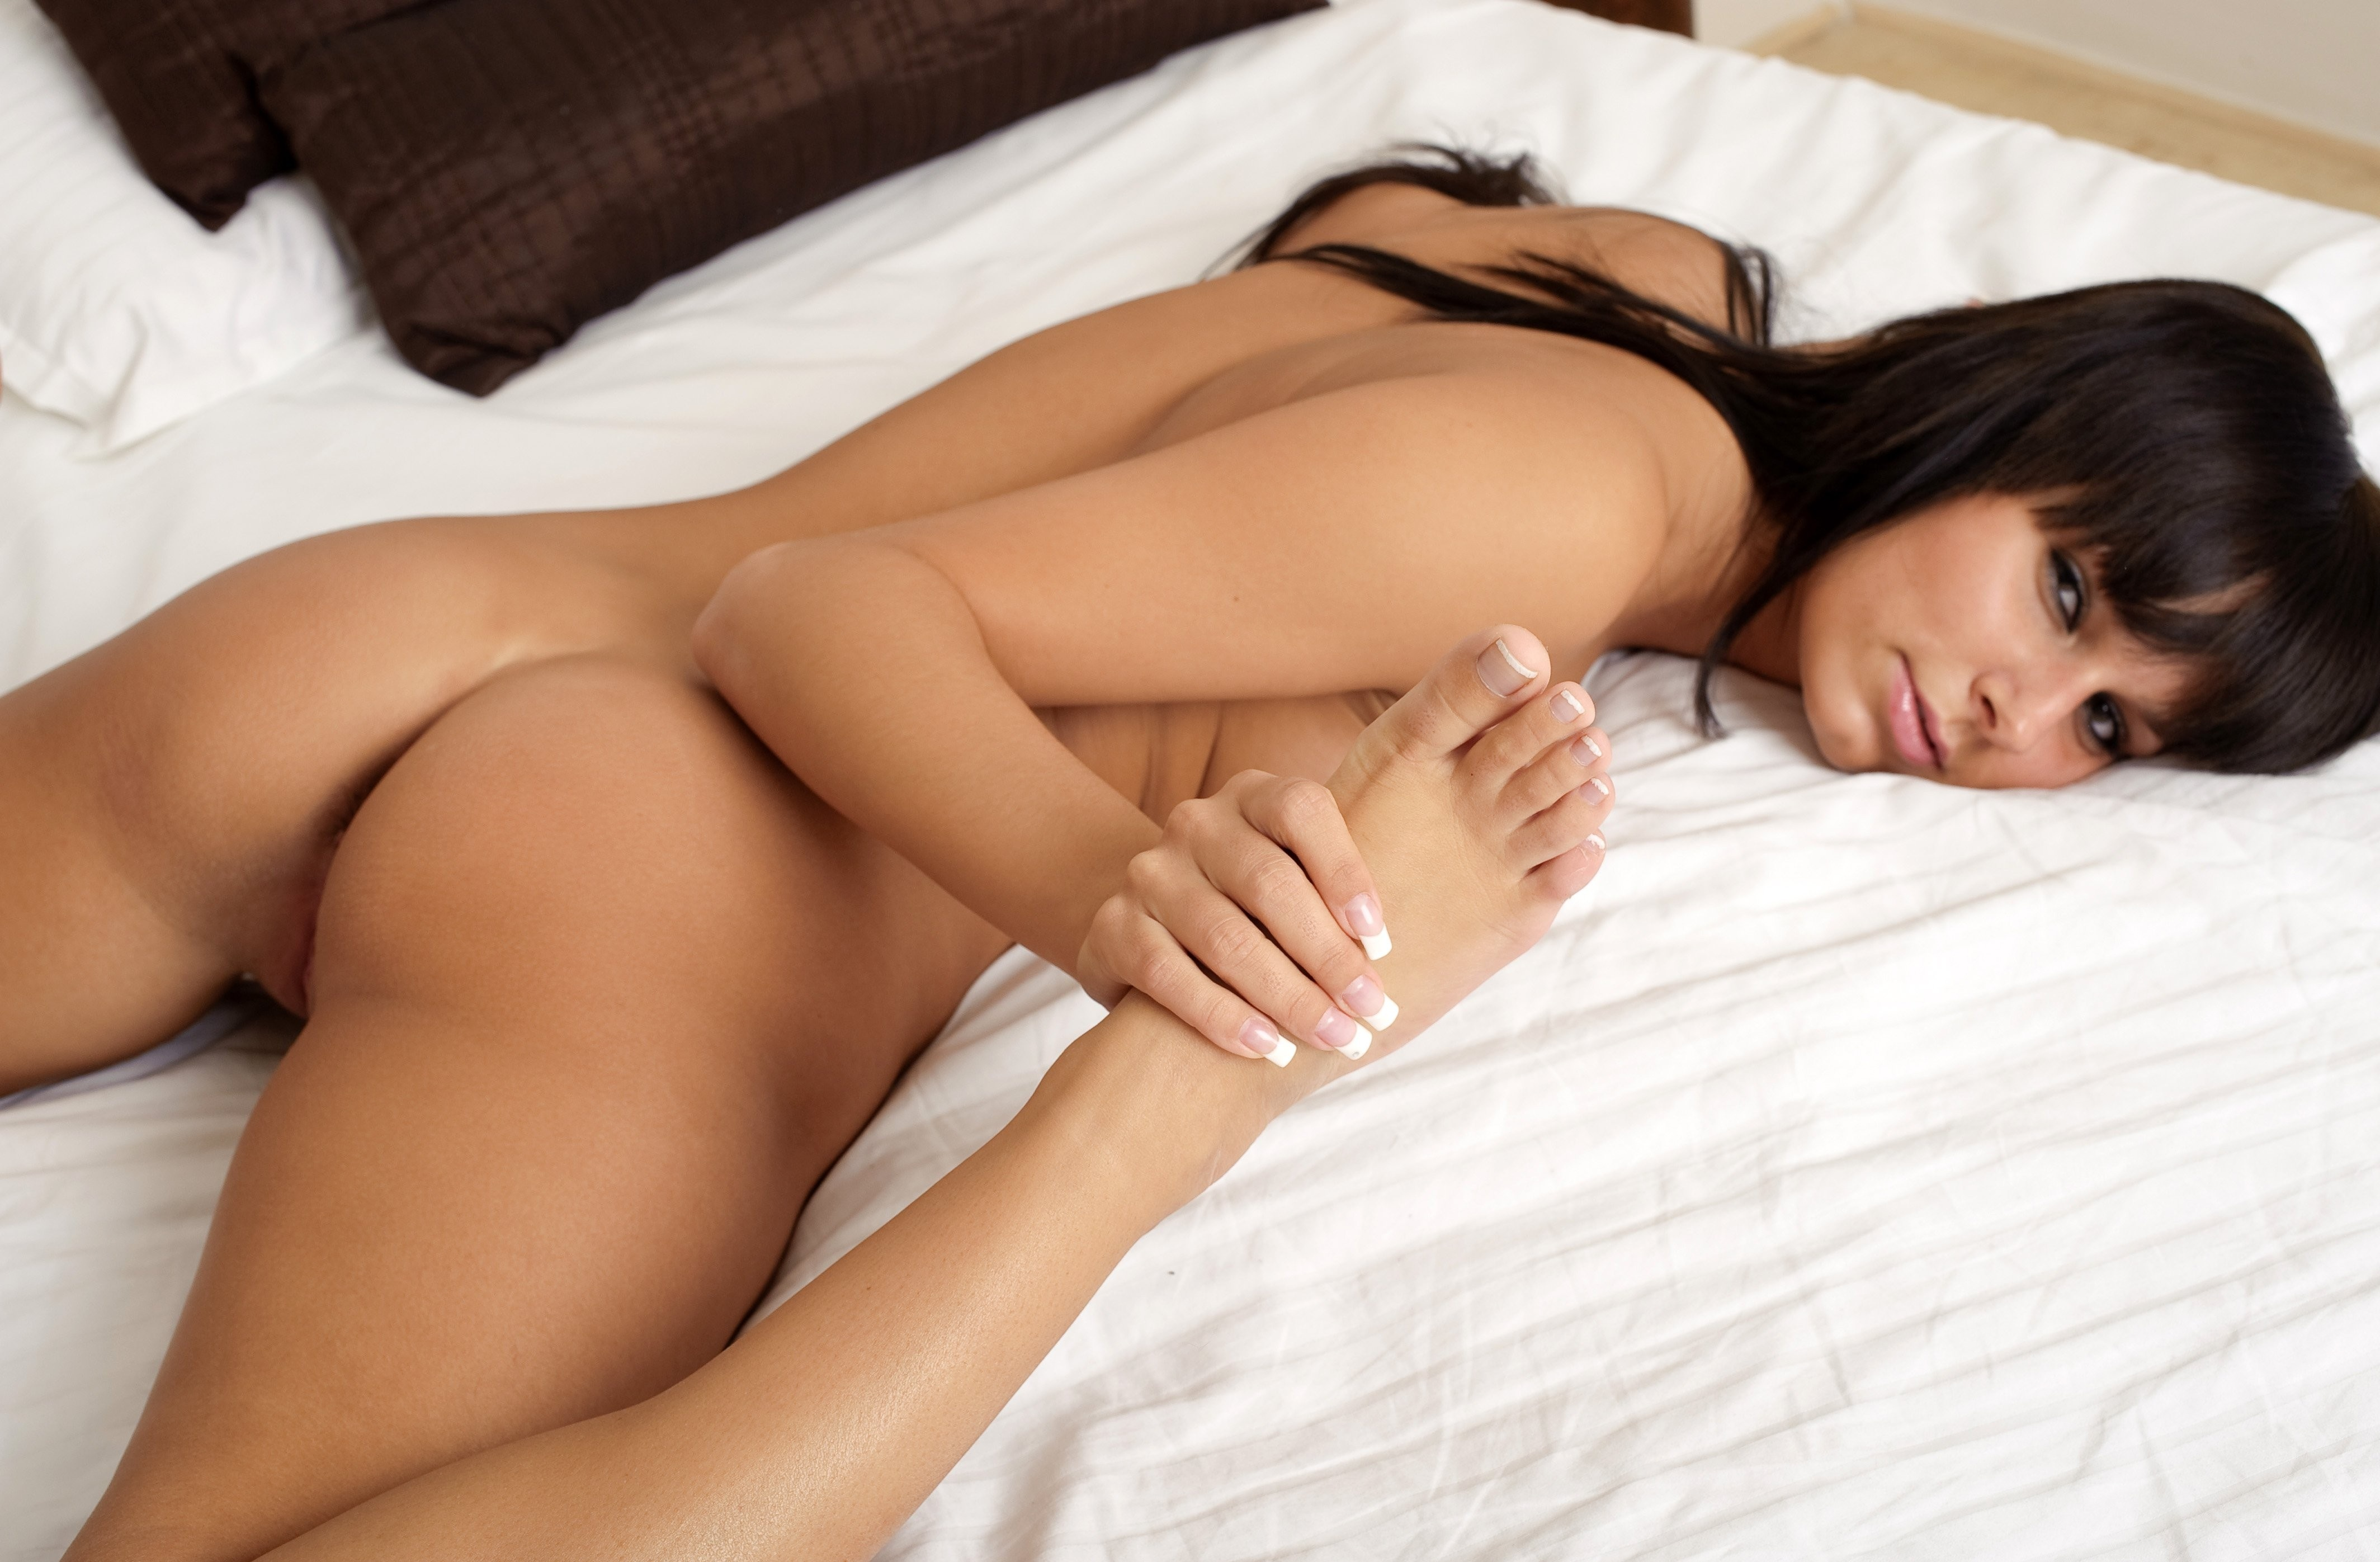 Nude ass on bed